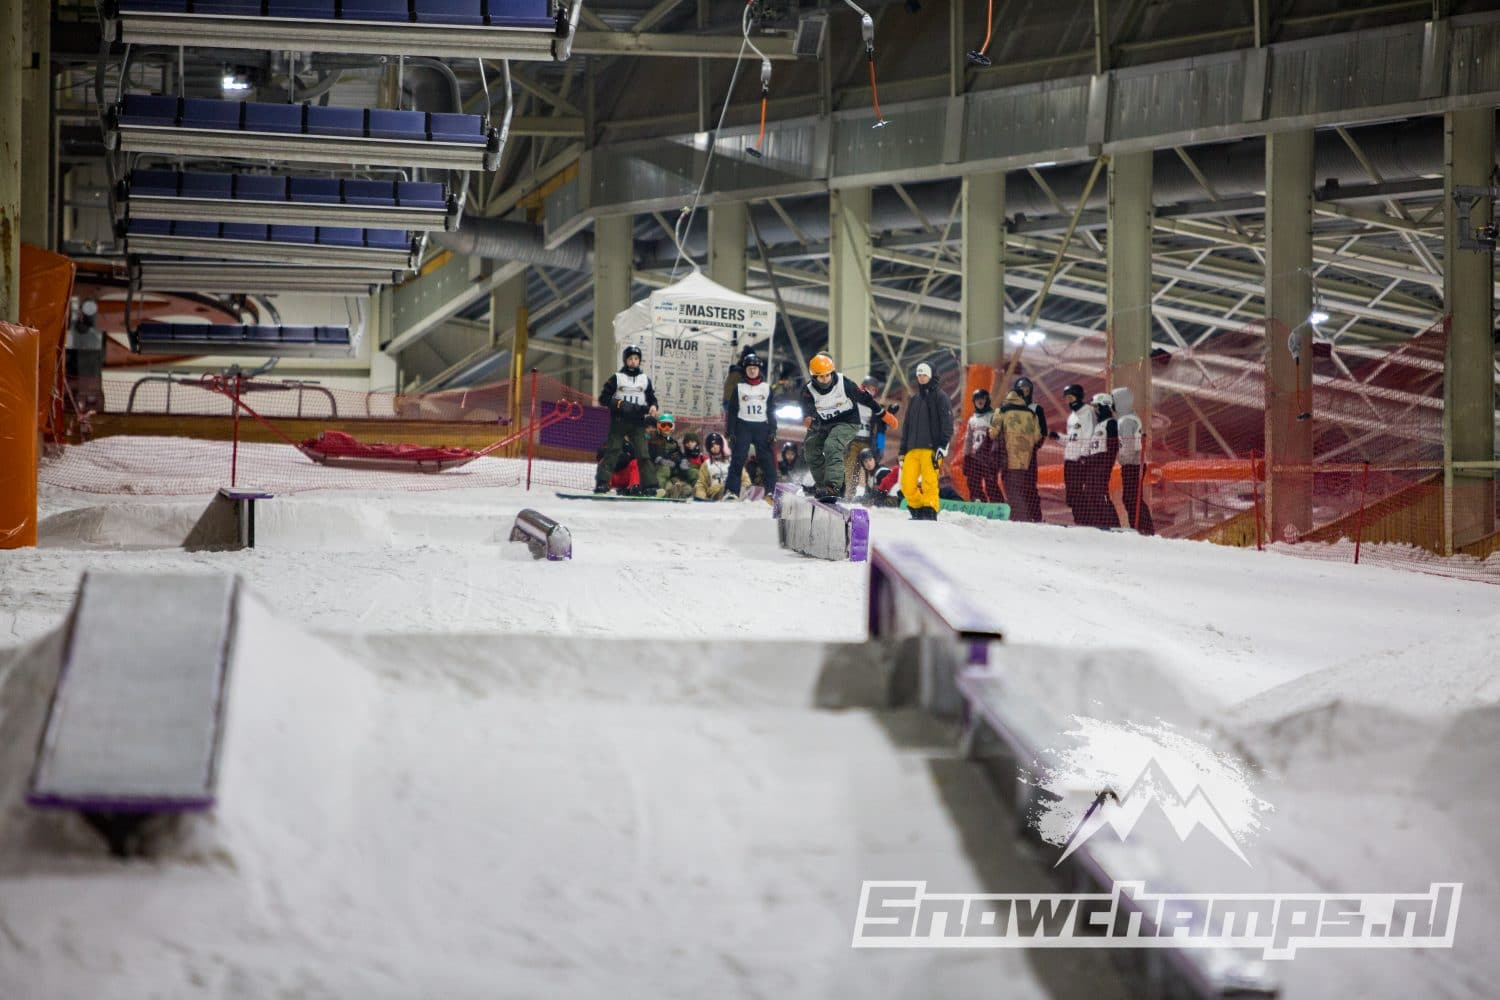 SnowWorld, Landgraaf indoor